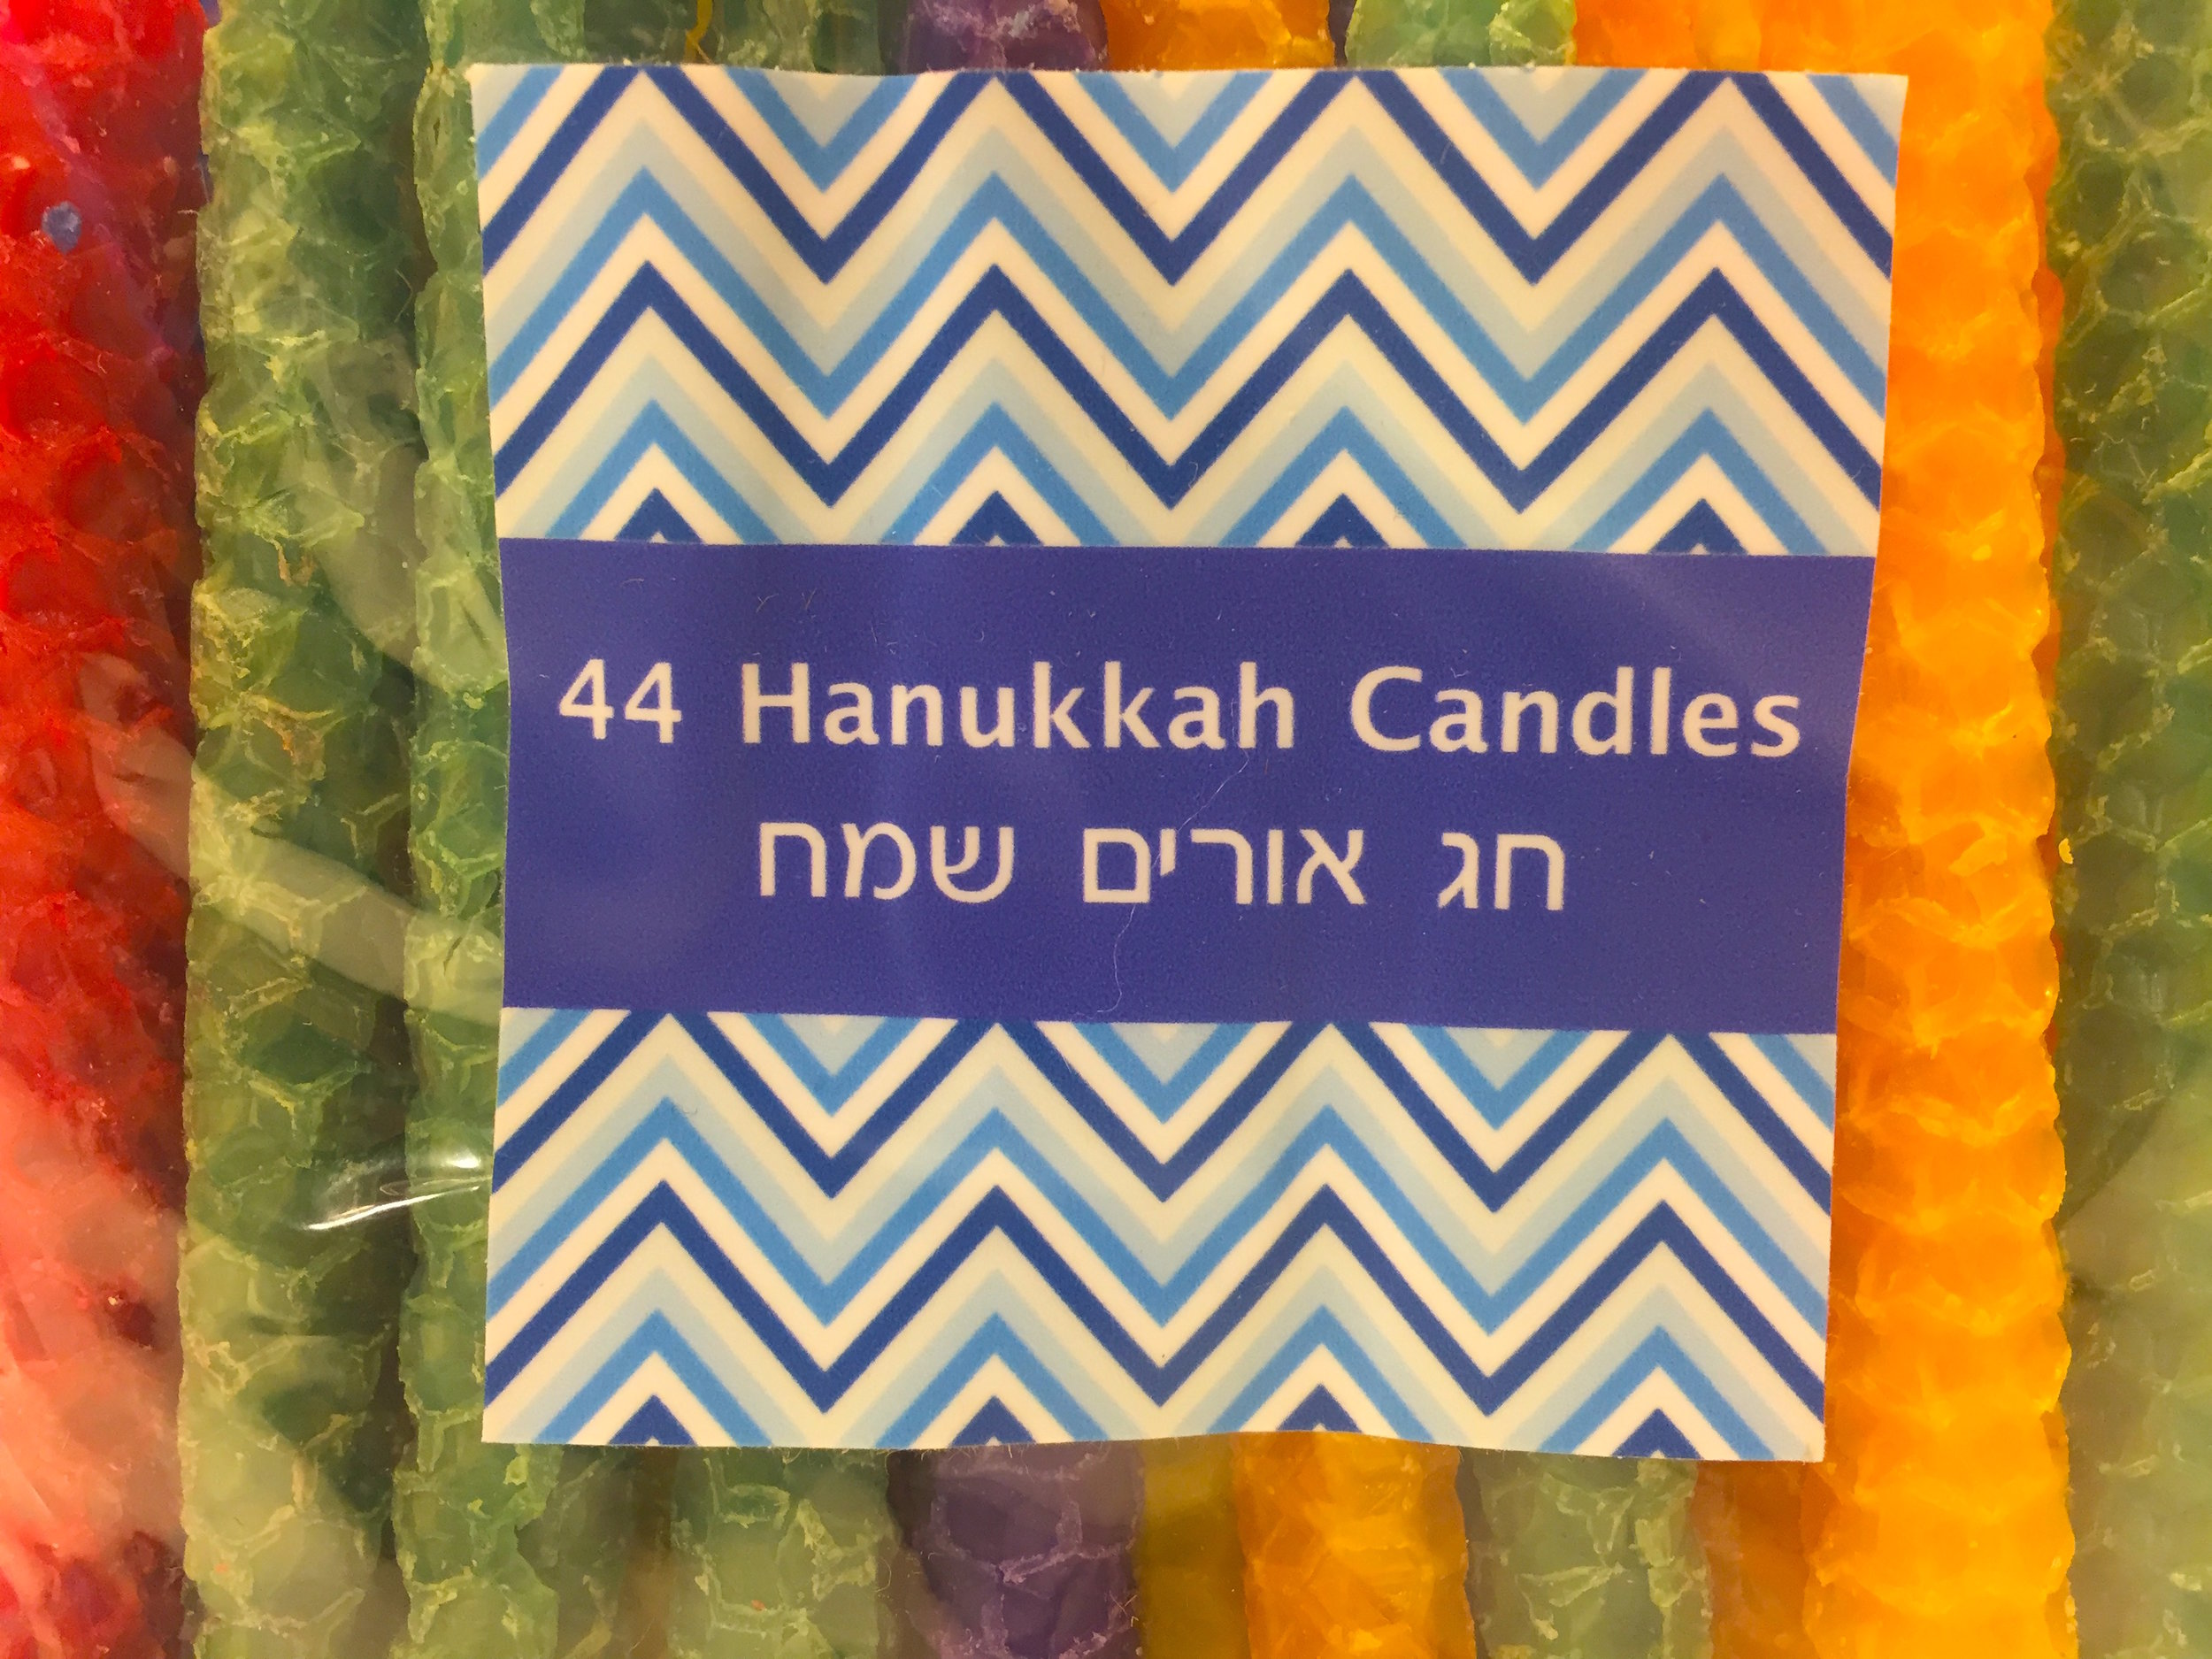 These candles come from our friends at The Celebration Company in Houston, which gives meaningful employment to developmentally disabled adults. Hard to go wrong when you can do two good deeds with one holy act.